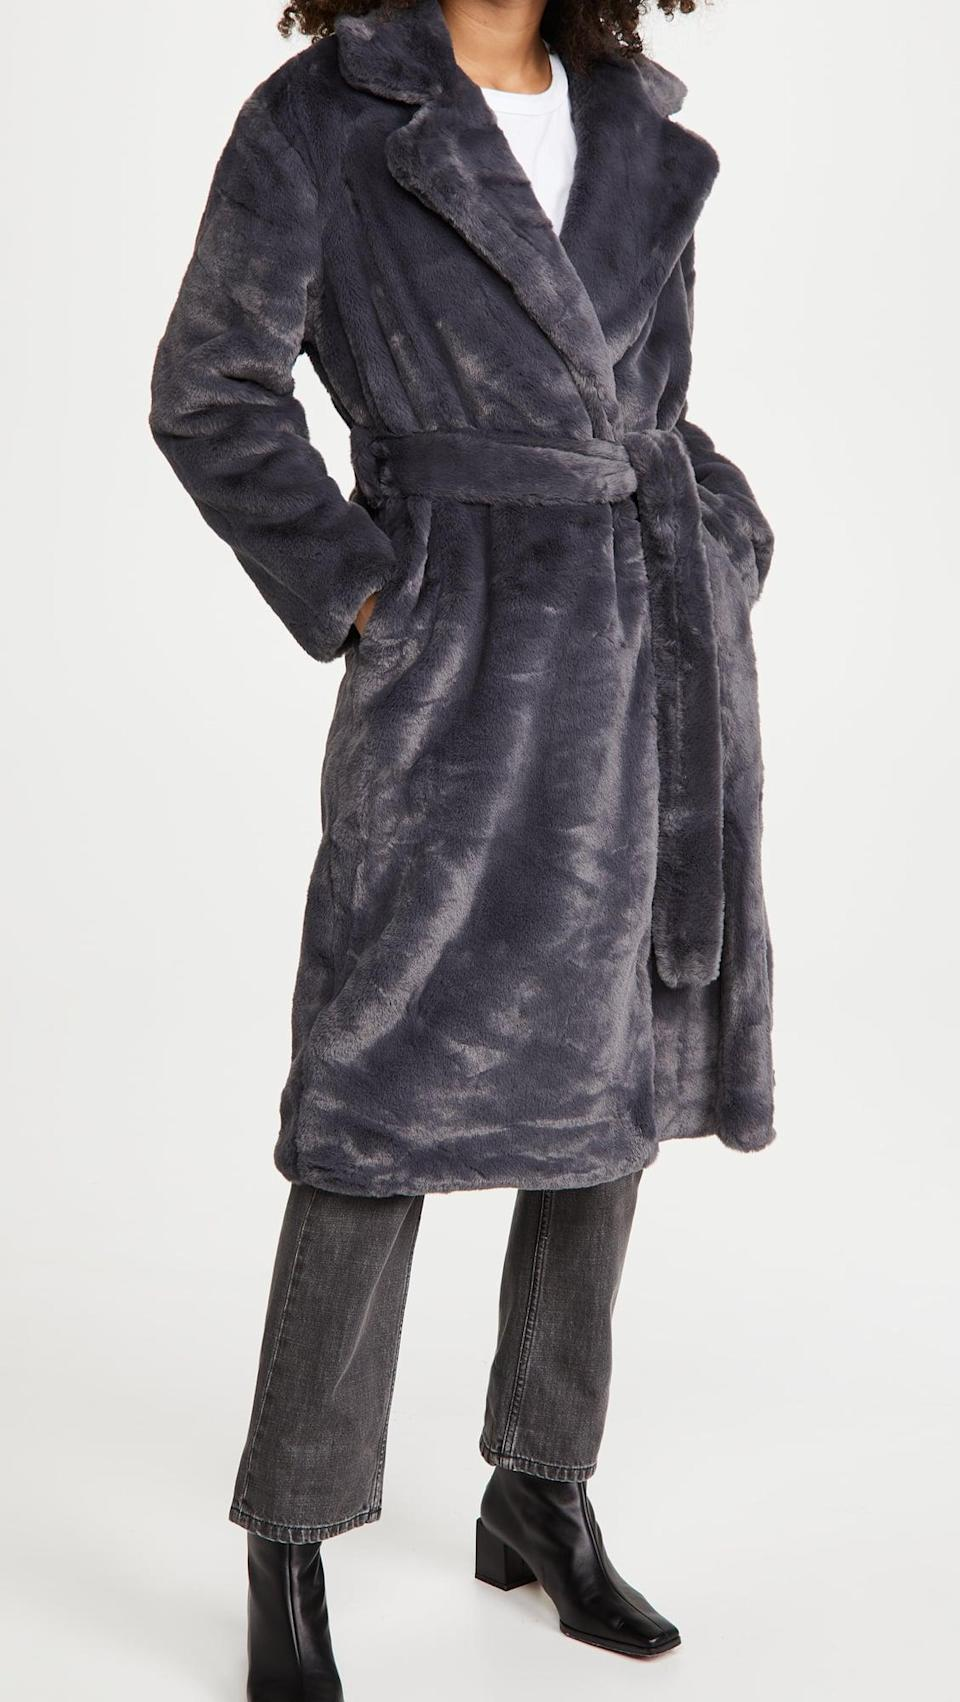 <p>This <span>Apparis Mona Wrap Coat</span> ($300, plus use code FALL20) looks like it feels amazing.</p>